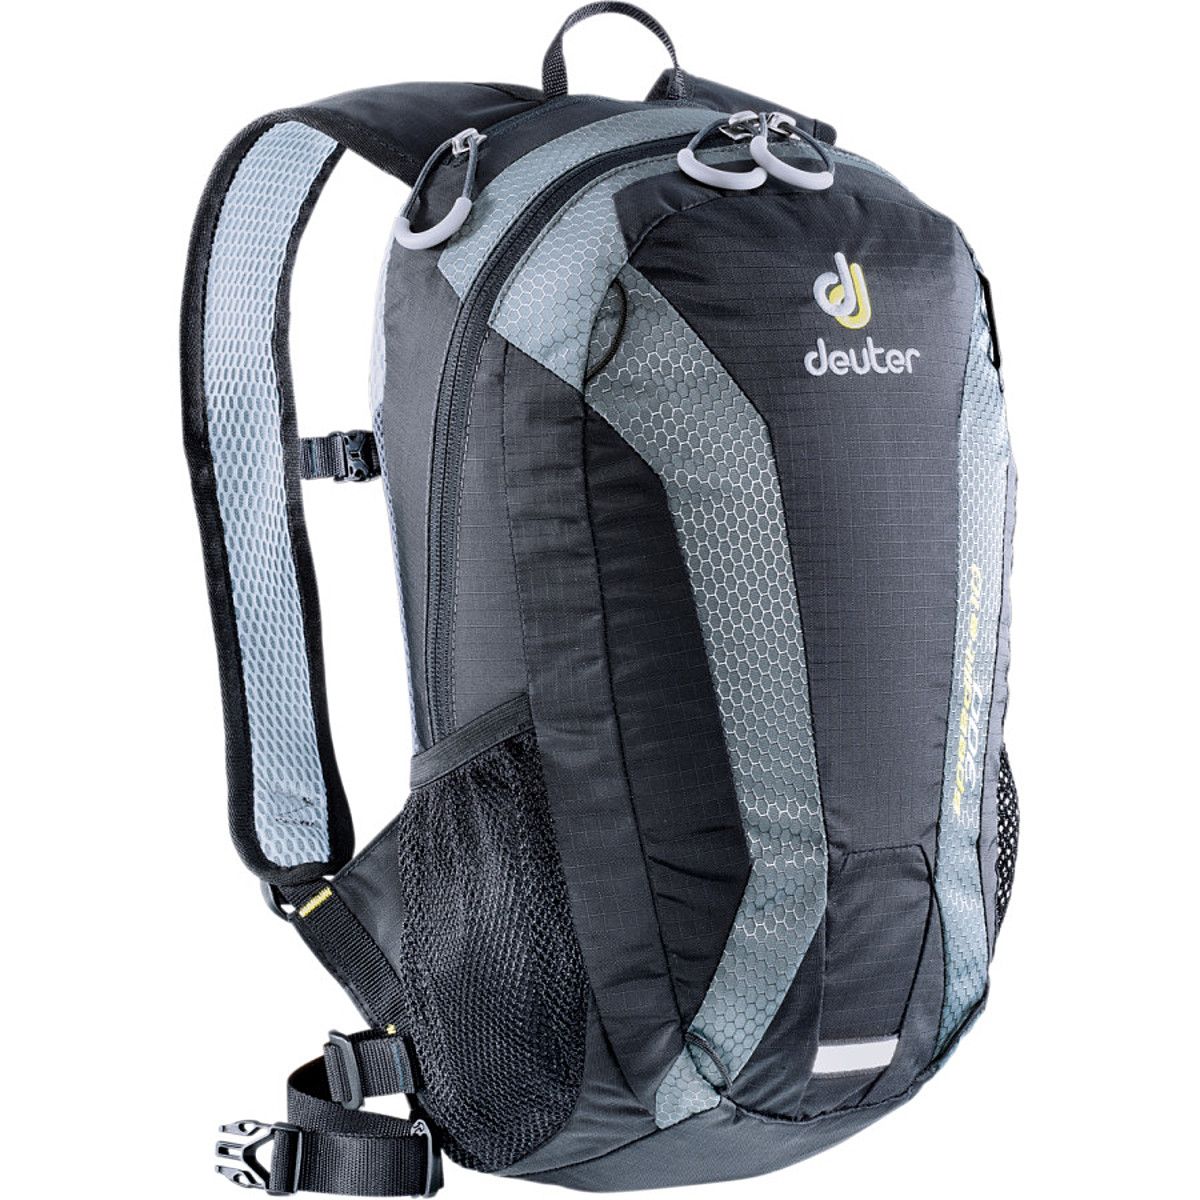 deuter speed lite 20 pack review